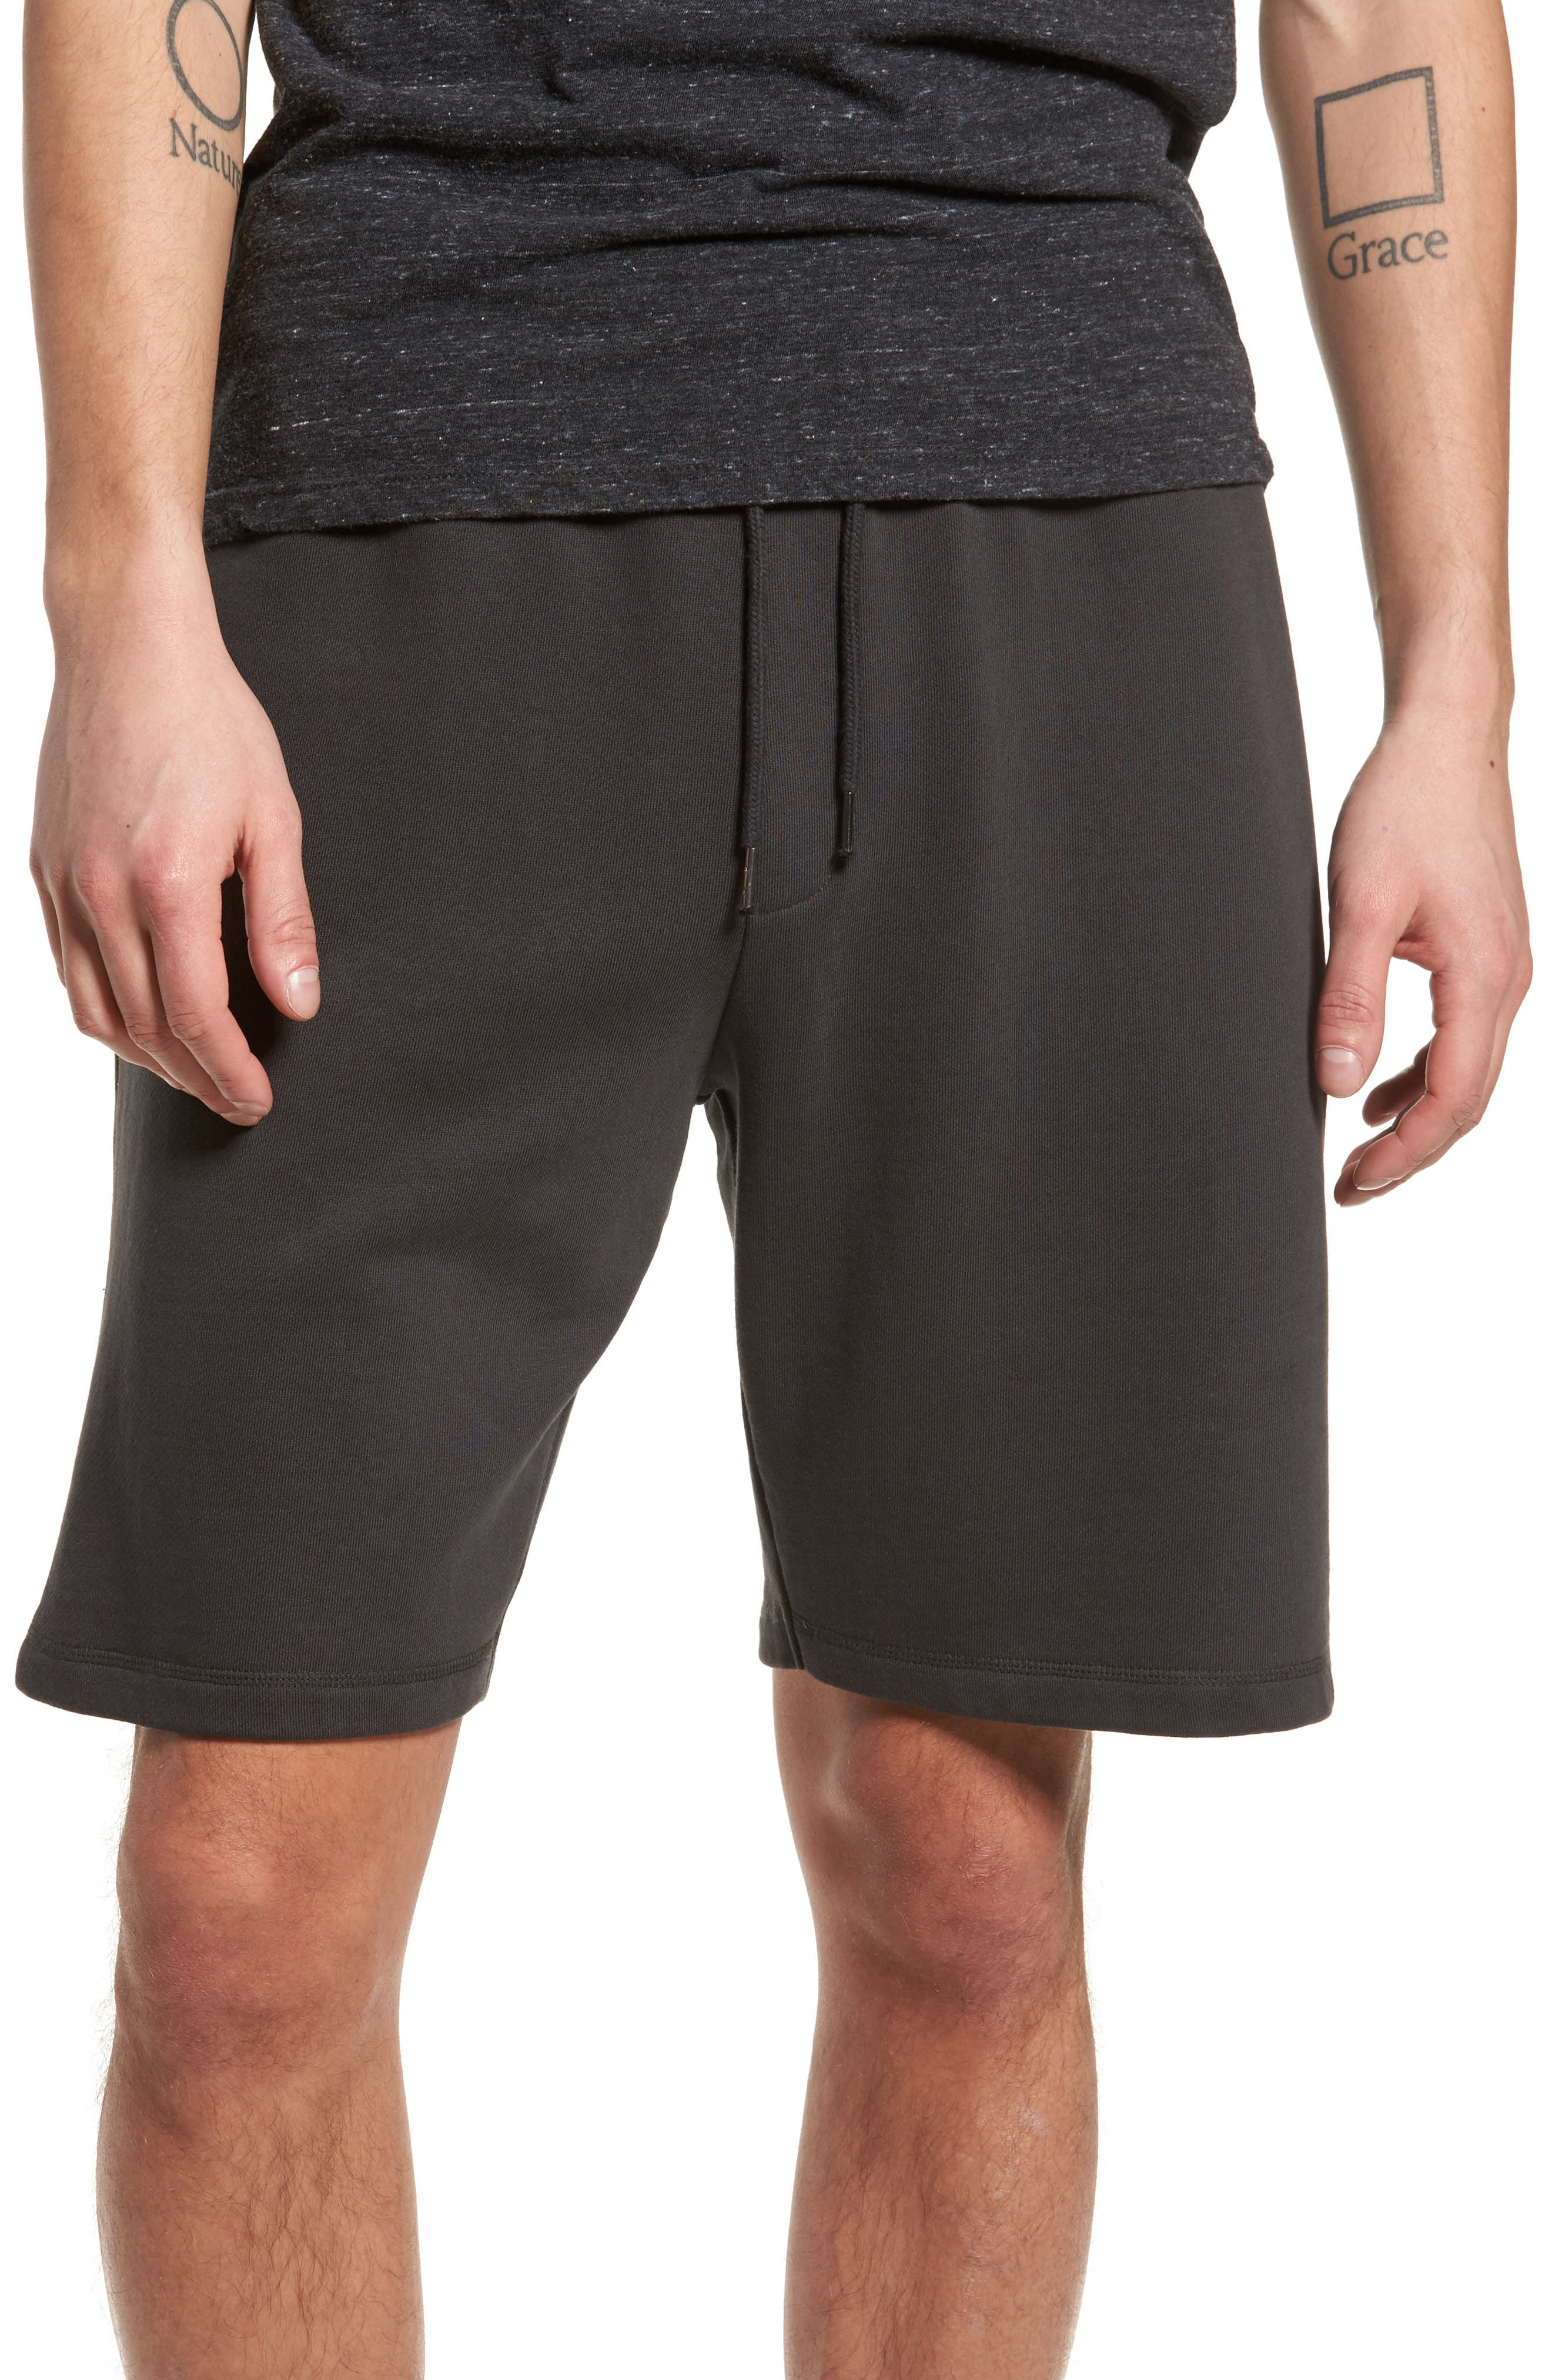 Marty Fleece Shorts,                             Main thumbnail 1, color,                             Pirate Black